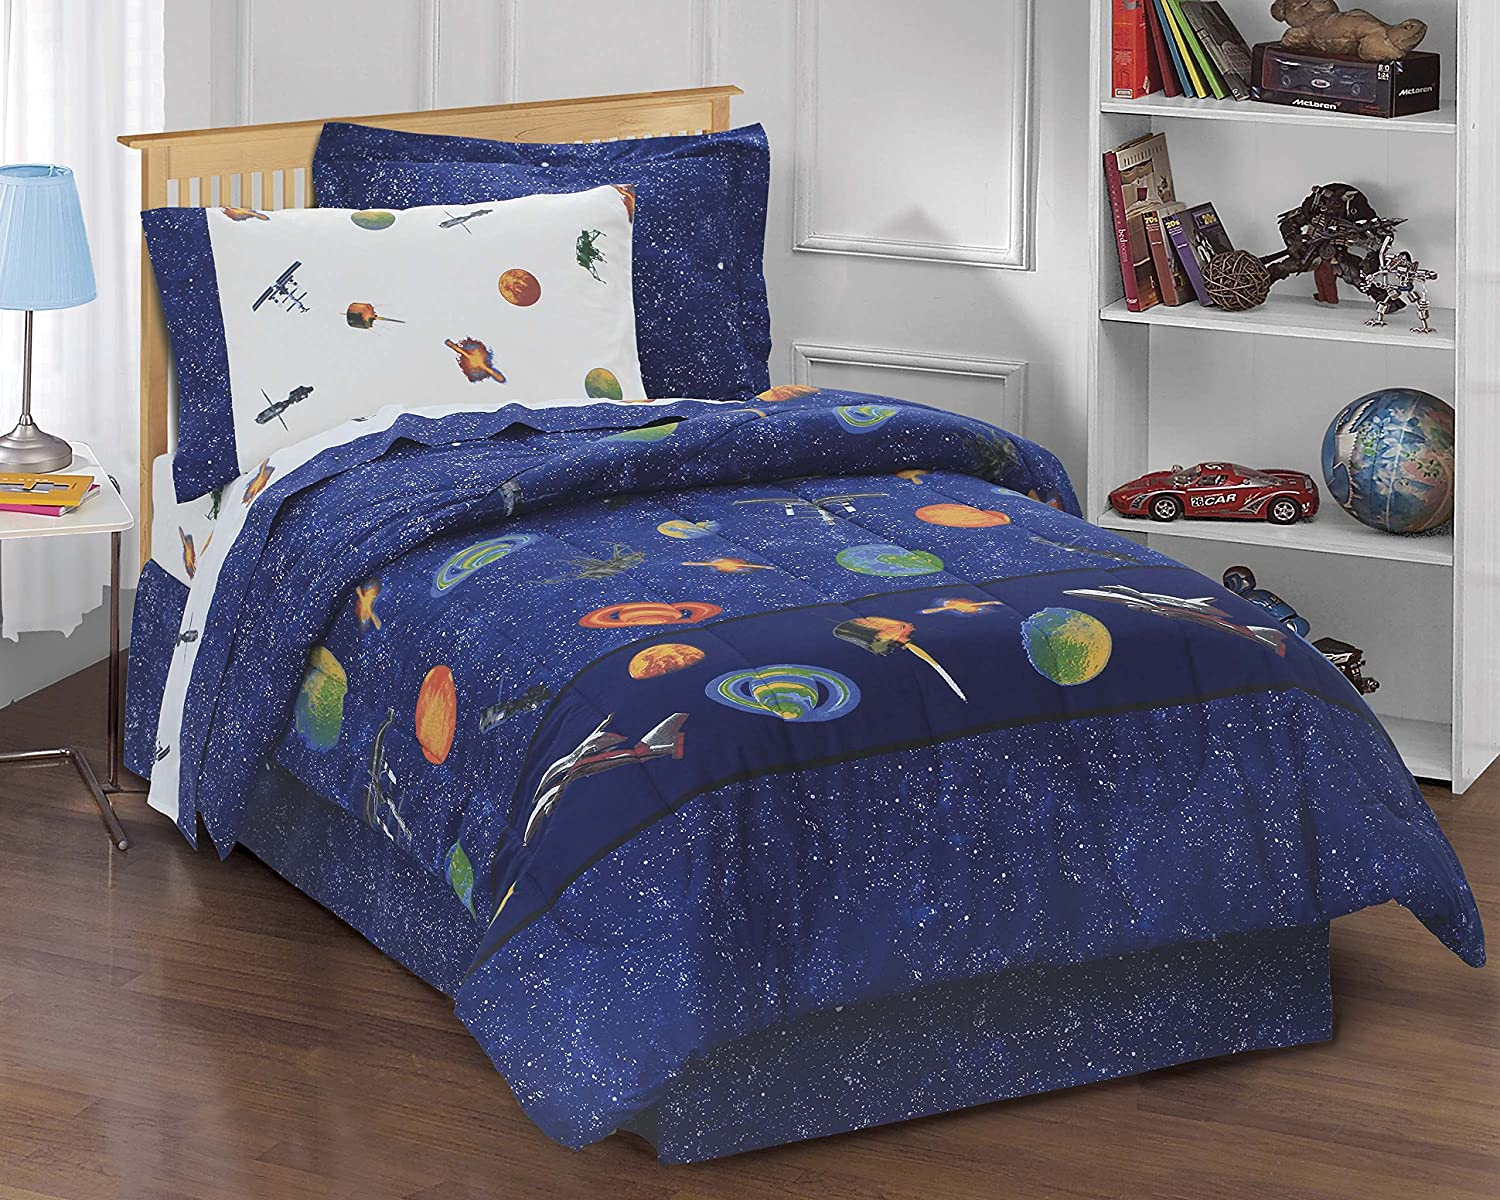 Dream Factory Outer Space Satellites Boys Comforter Set, Blue, Twin CHMJE 2B566901MU